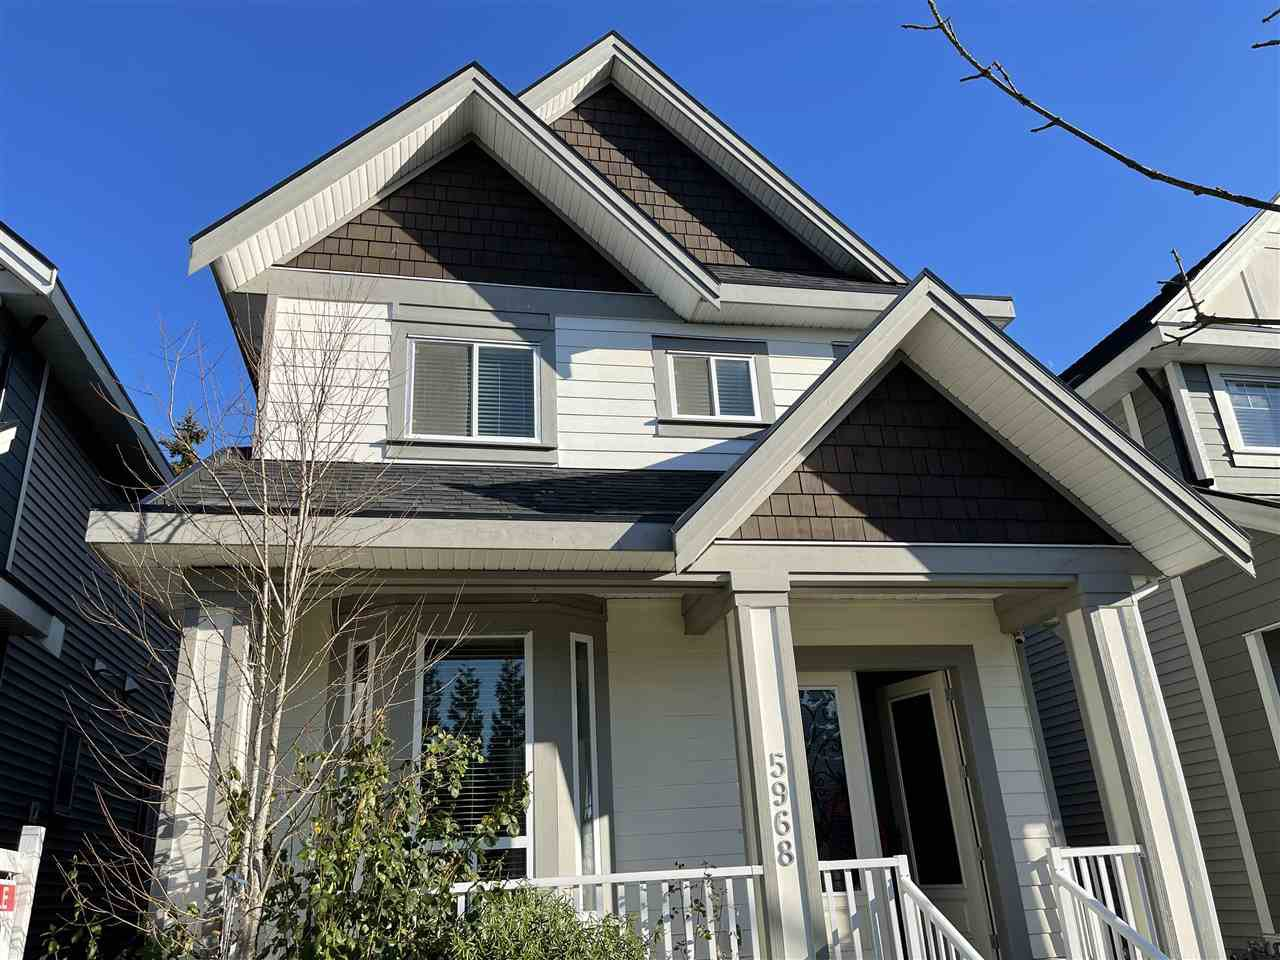 Main Photo: 5968 131 Street in Surrey: Panorama Ridge House for sale : MLS®# R2526365